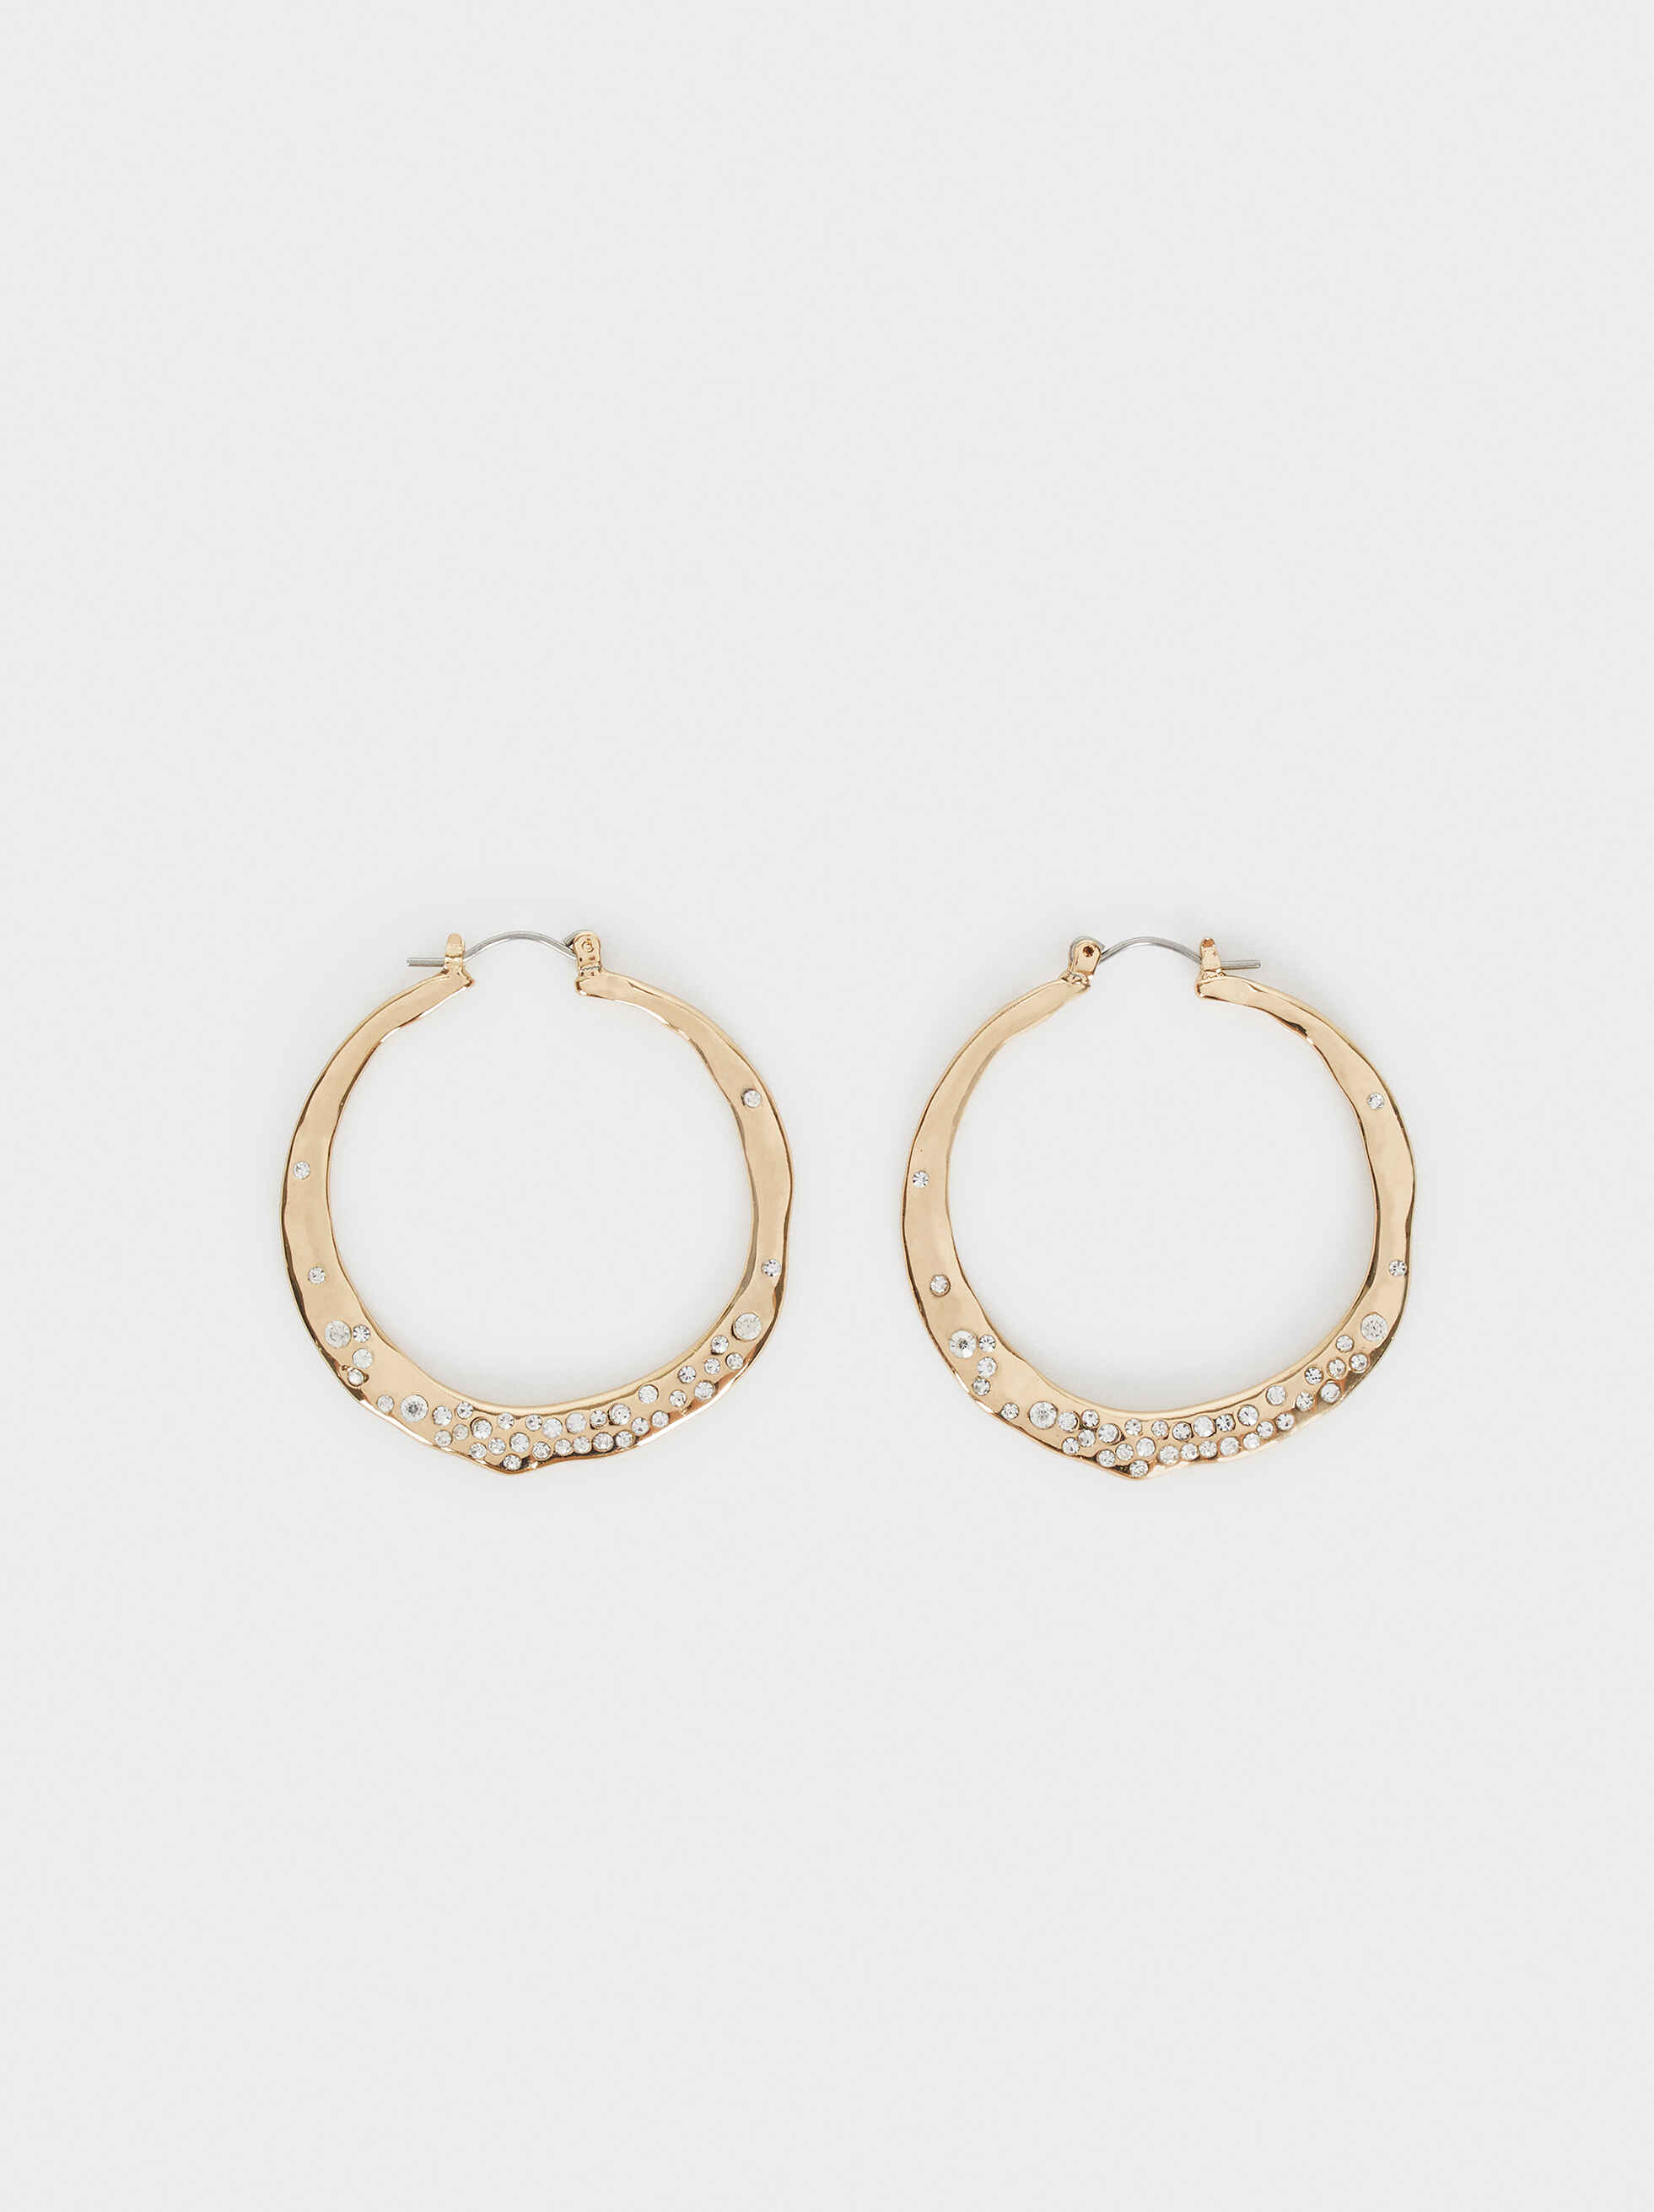 Medium Gold Hoop Earrings With Crystals, , hi-res